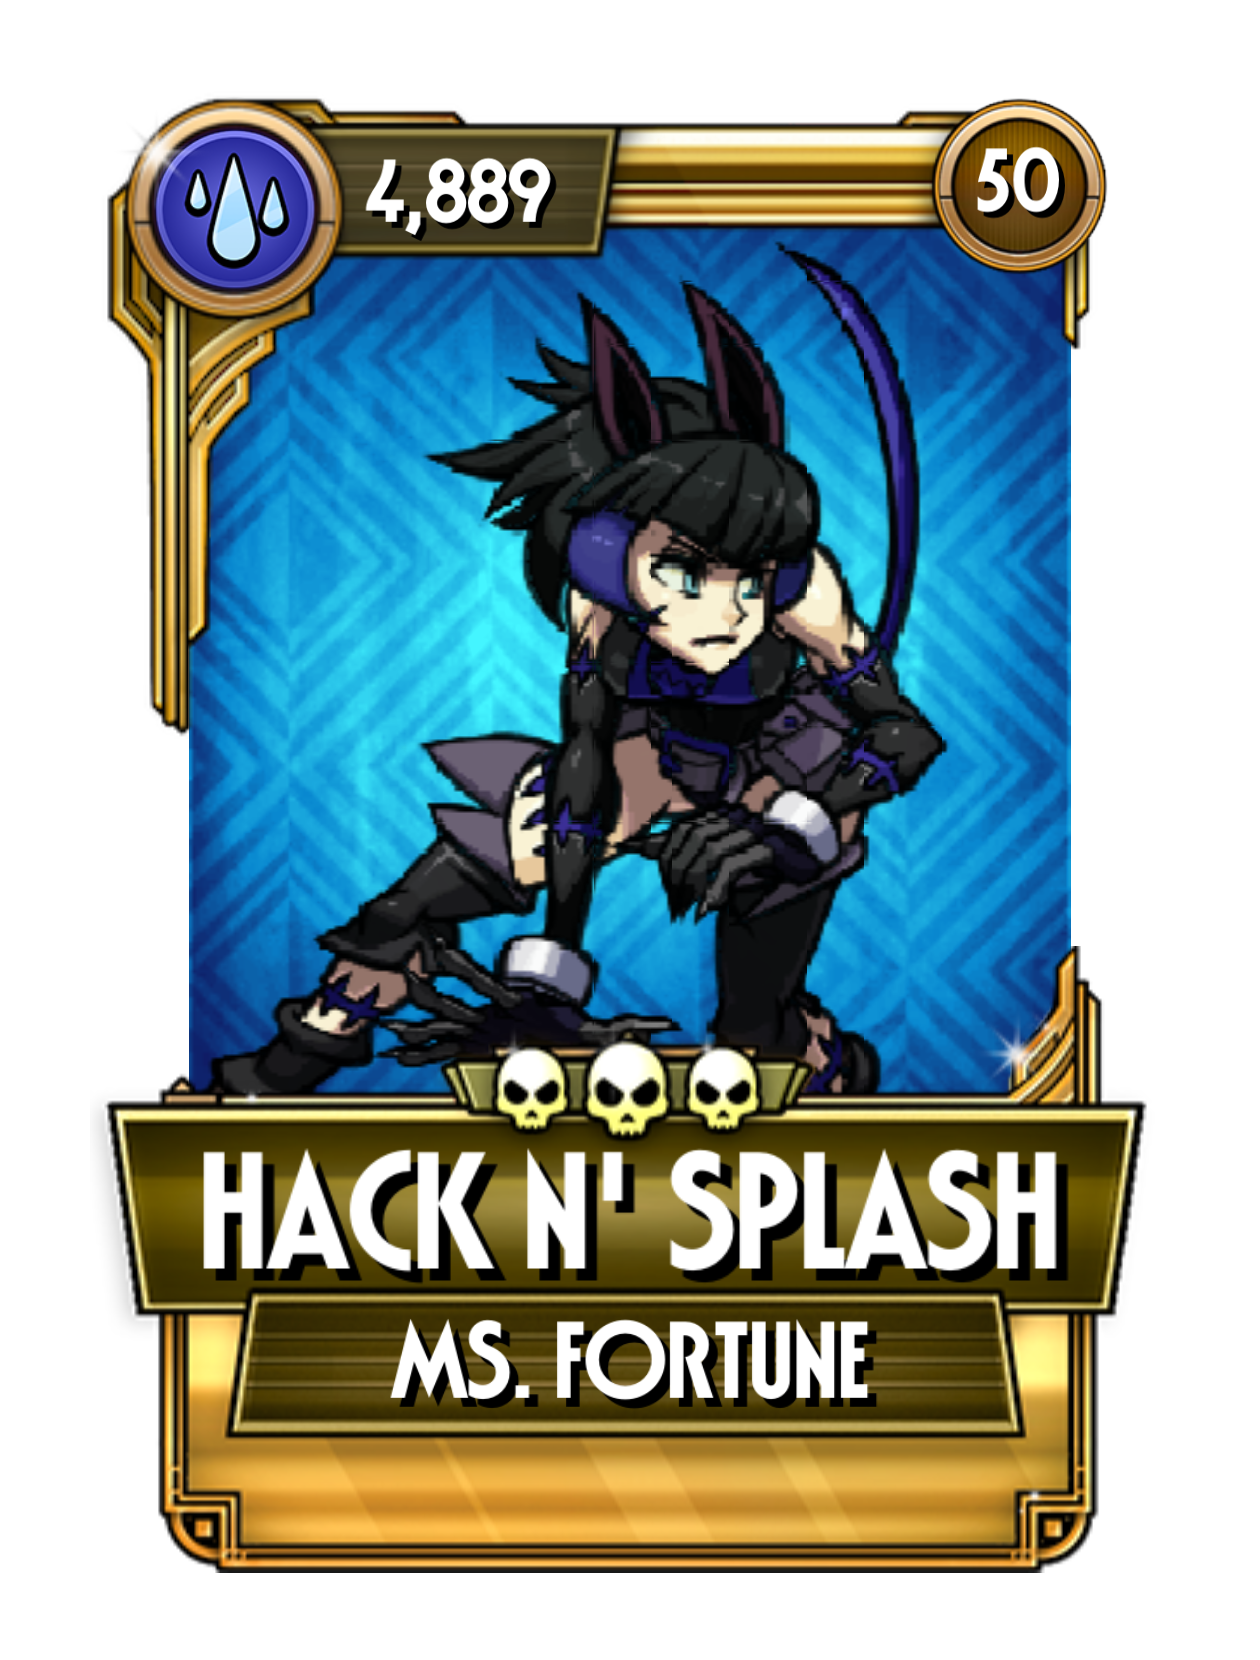 Hack n' Splash